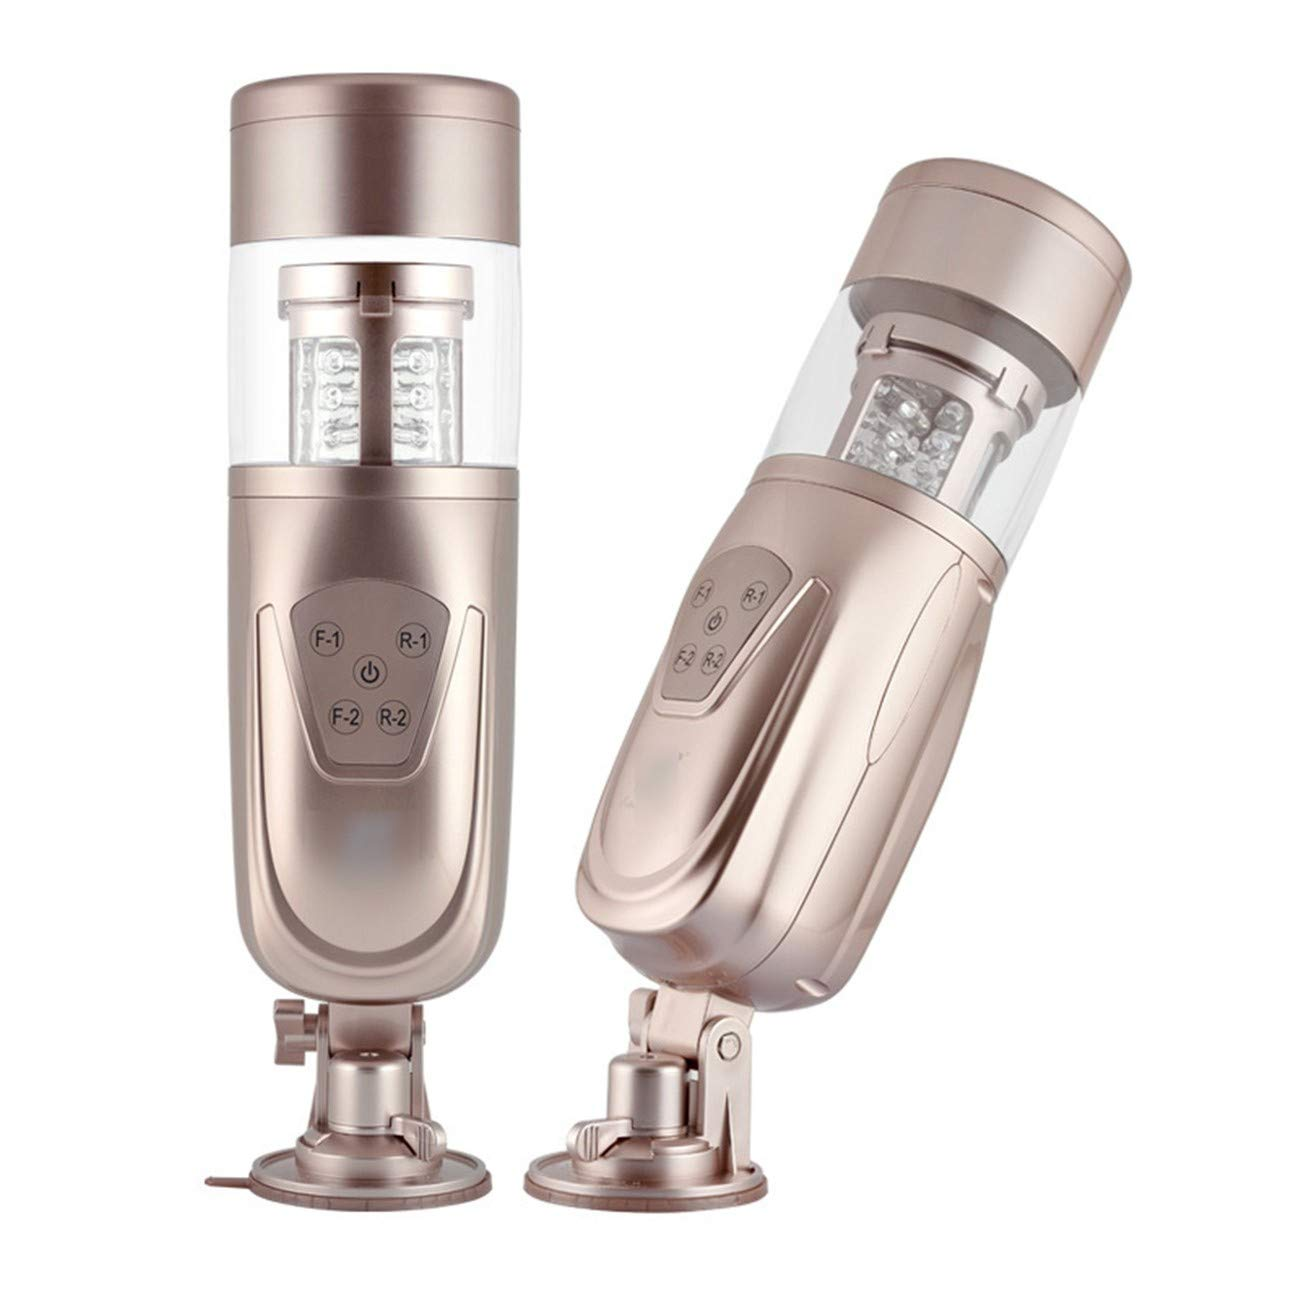 Telescopic Lover 2 Automatic Sex Machine, Rotating and Retractable Electric Male Masturbators, Sex Toys for Men Retail Box Packing